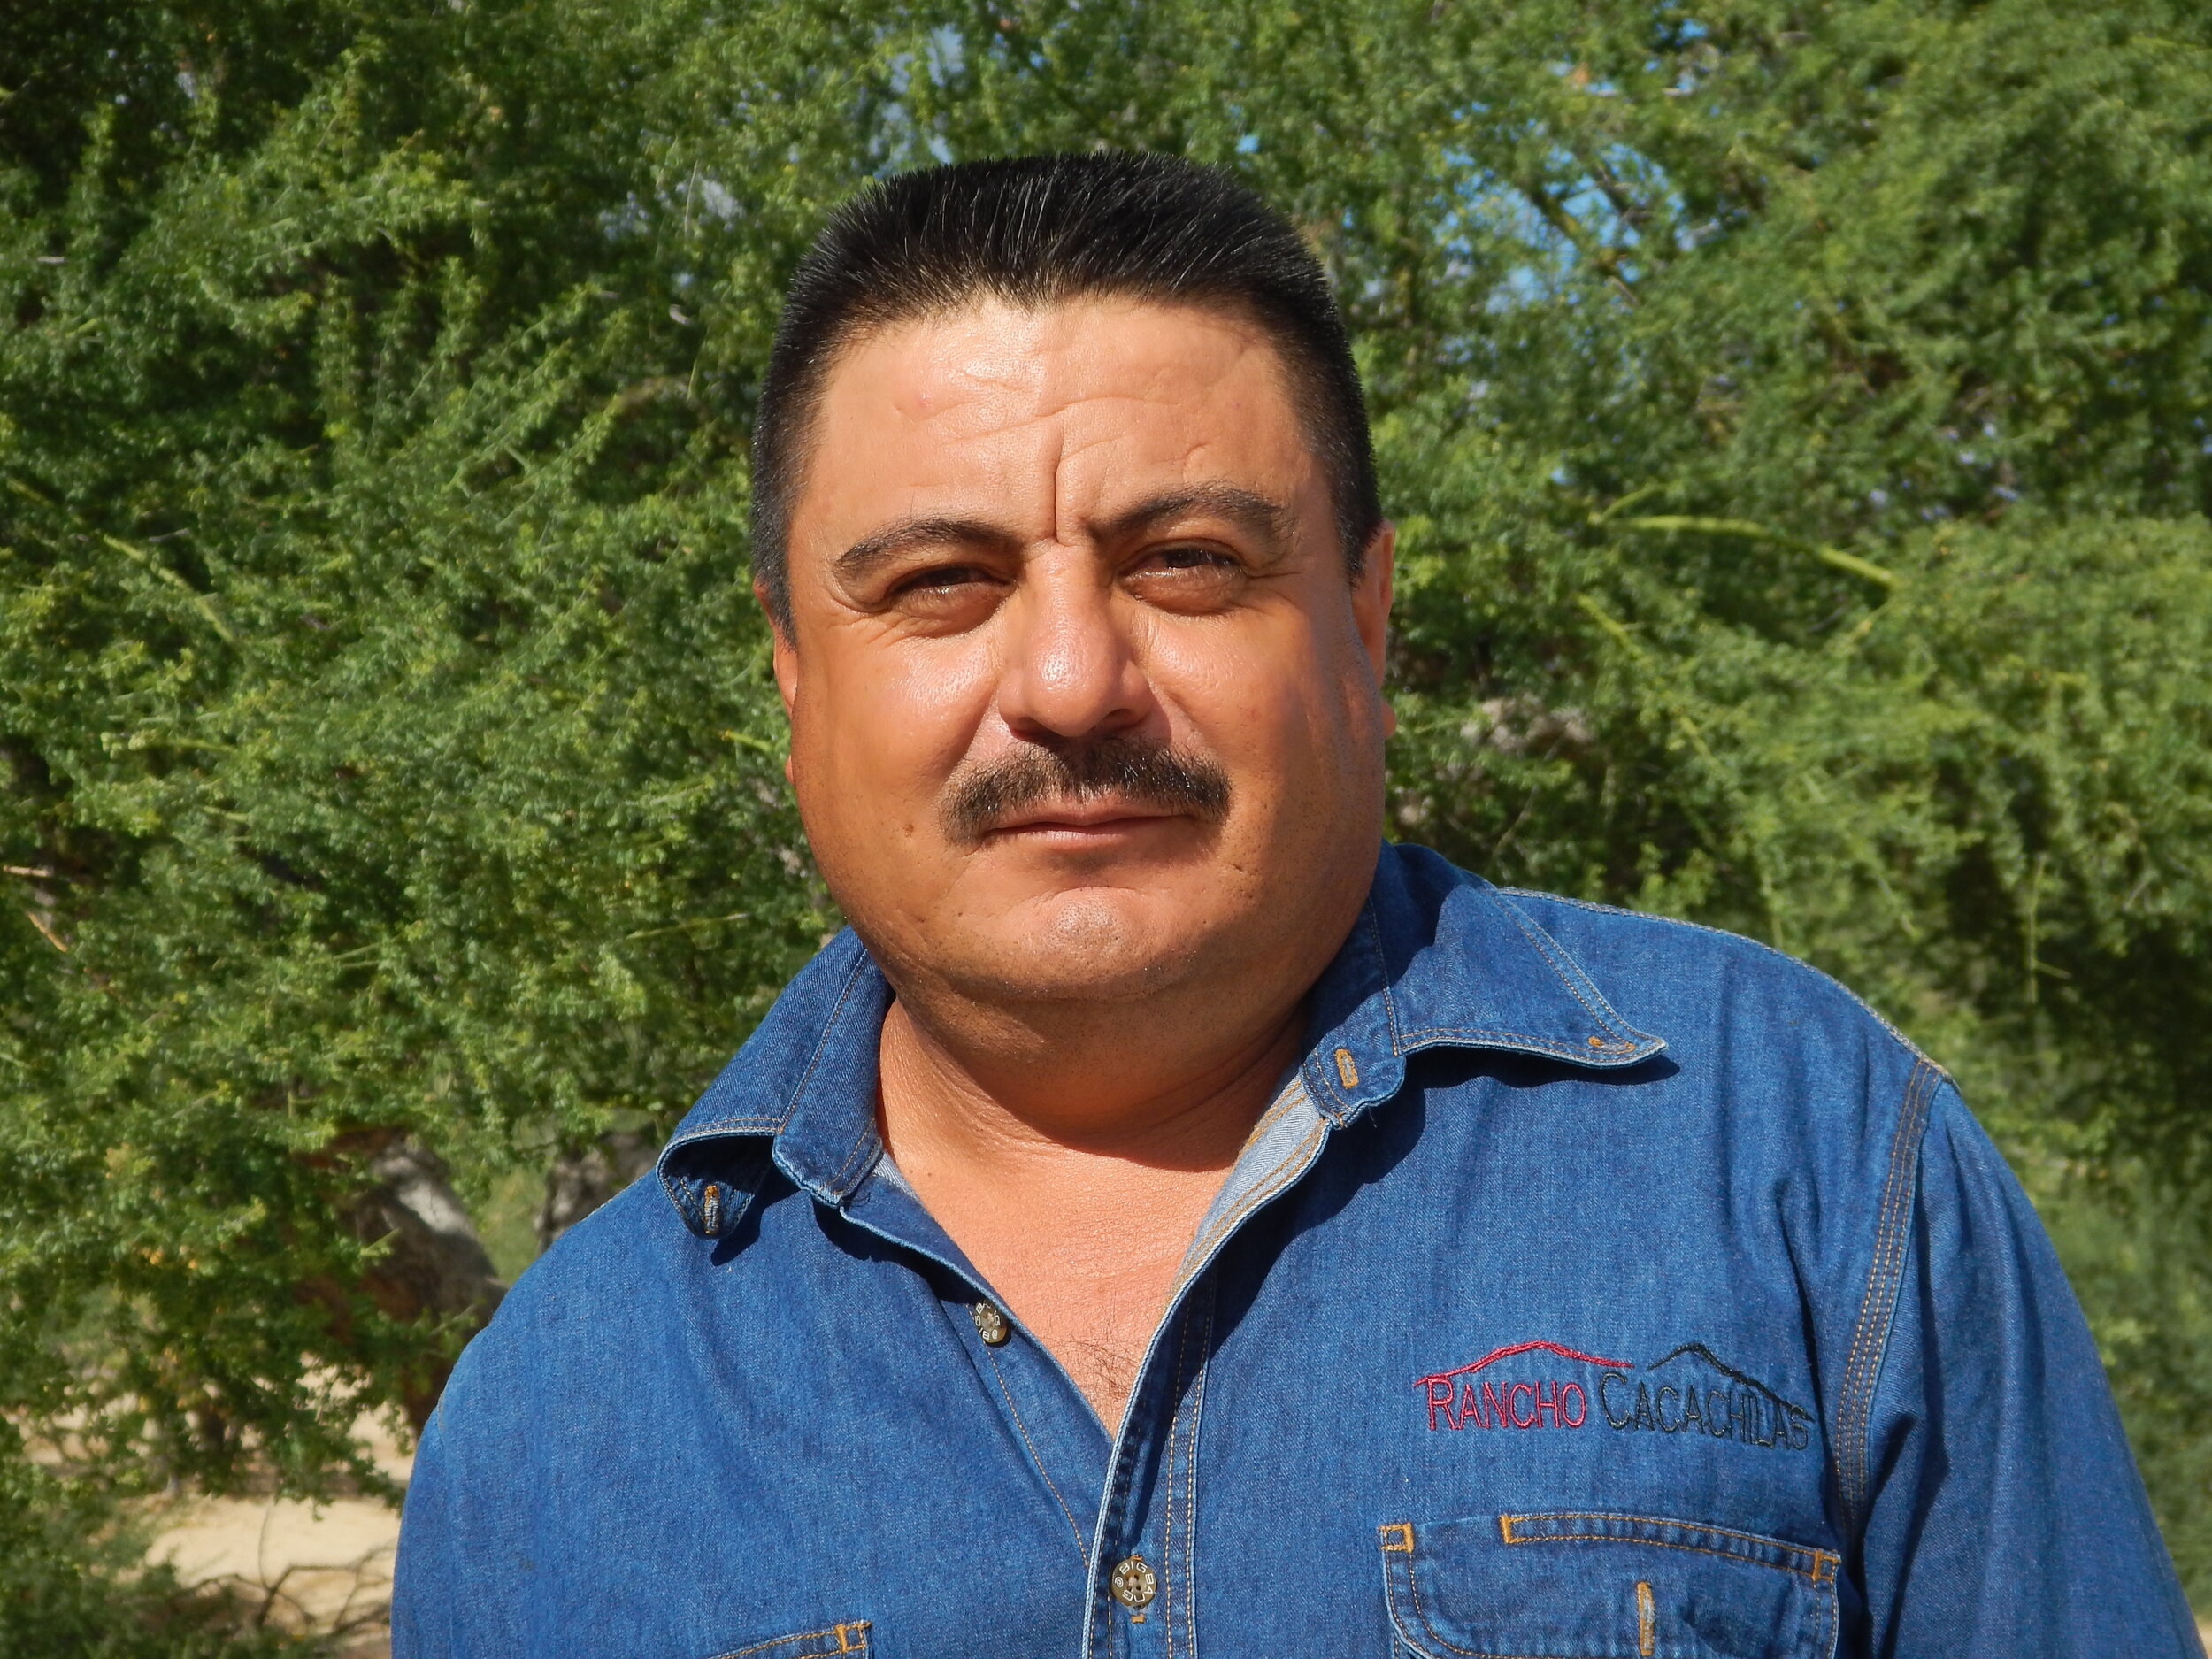 Joaquin Geraldo - Foreman   Joaquin Geraldo was a pioneer of the ranch since the beginning of the project, now he is the Foreman of the ranch. He is responsible for the overall operations and his specialized knowledge and experience at the ranch insures fluid operations. He is able to lead projects between diverse departments.